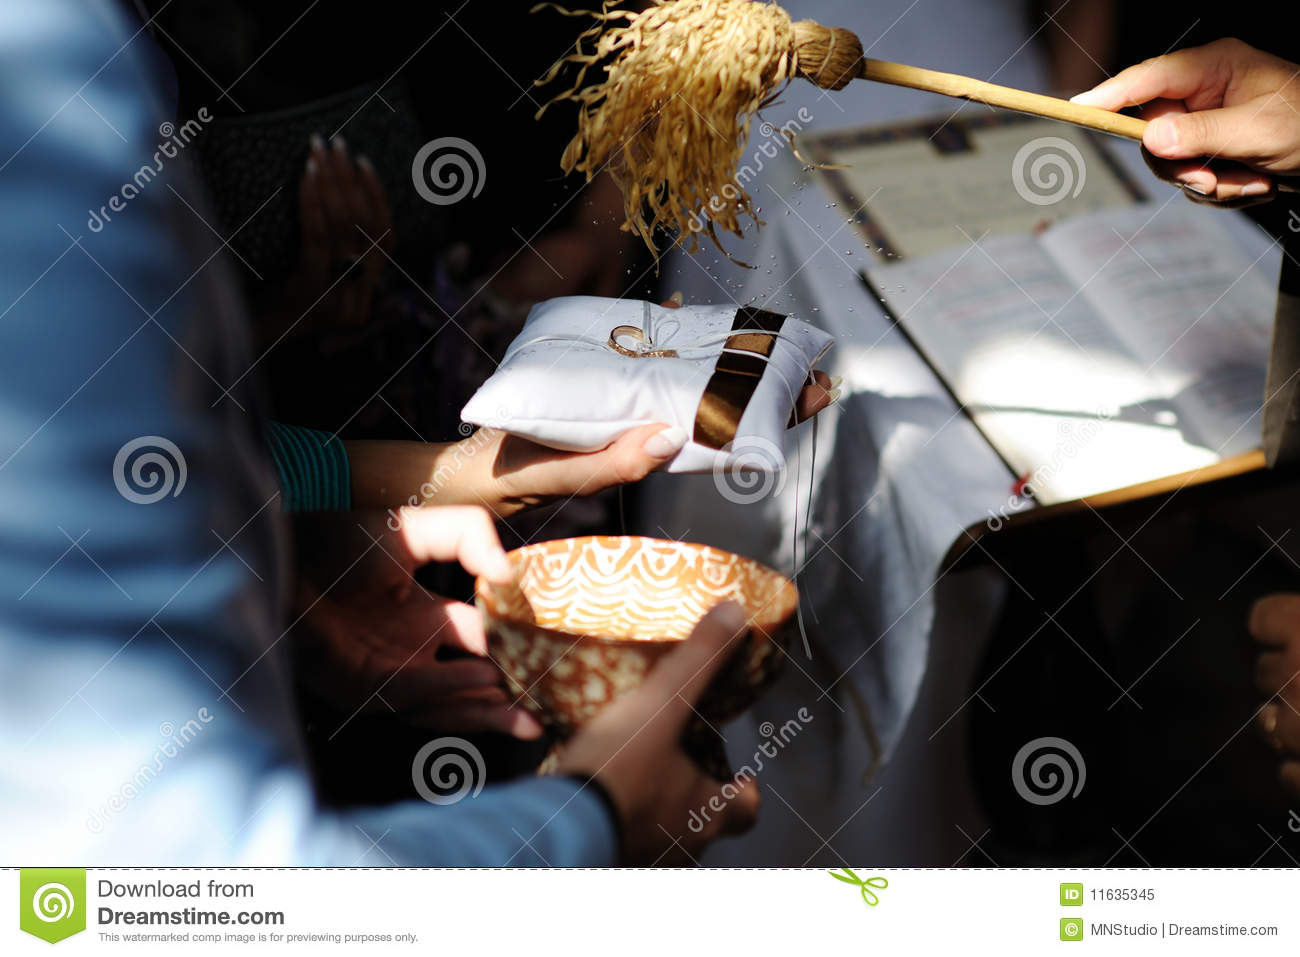 Priest Blessing Wedding Rings Stock Image Image of fancy jewel